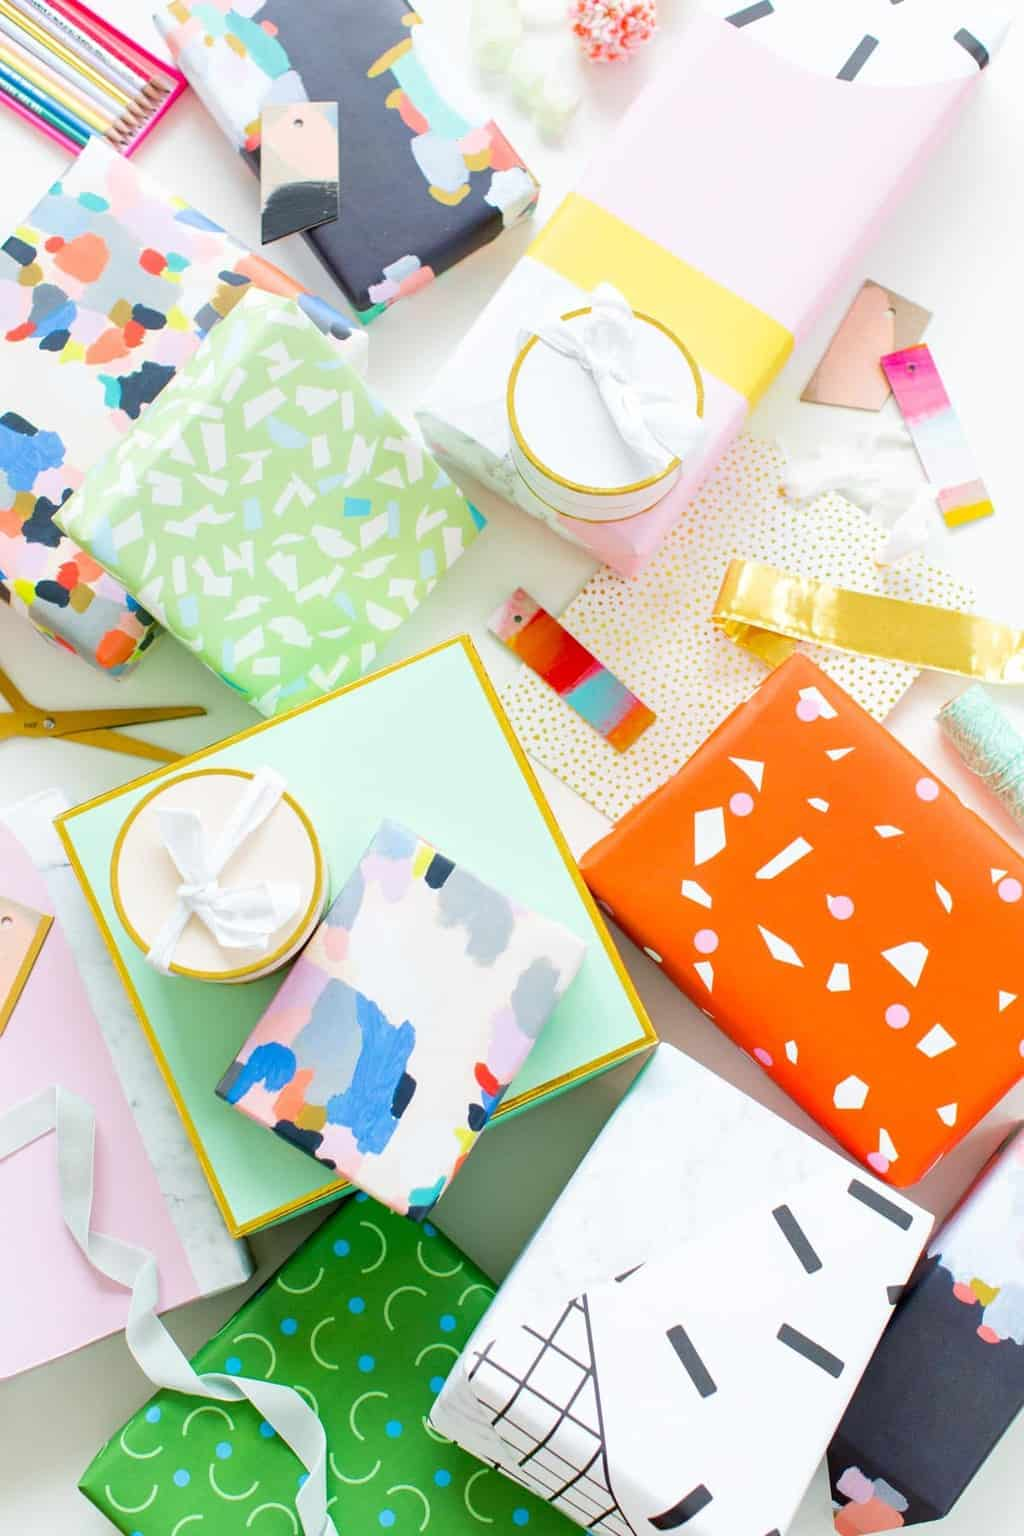 The Cutest Gift Wrap Ideas for any Special Occasion by Ashley Rose of the award winning DIY blog, Sugar & Cloth.